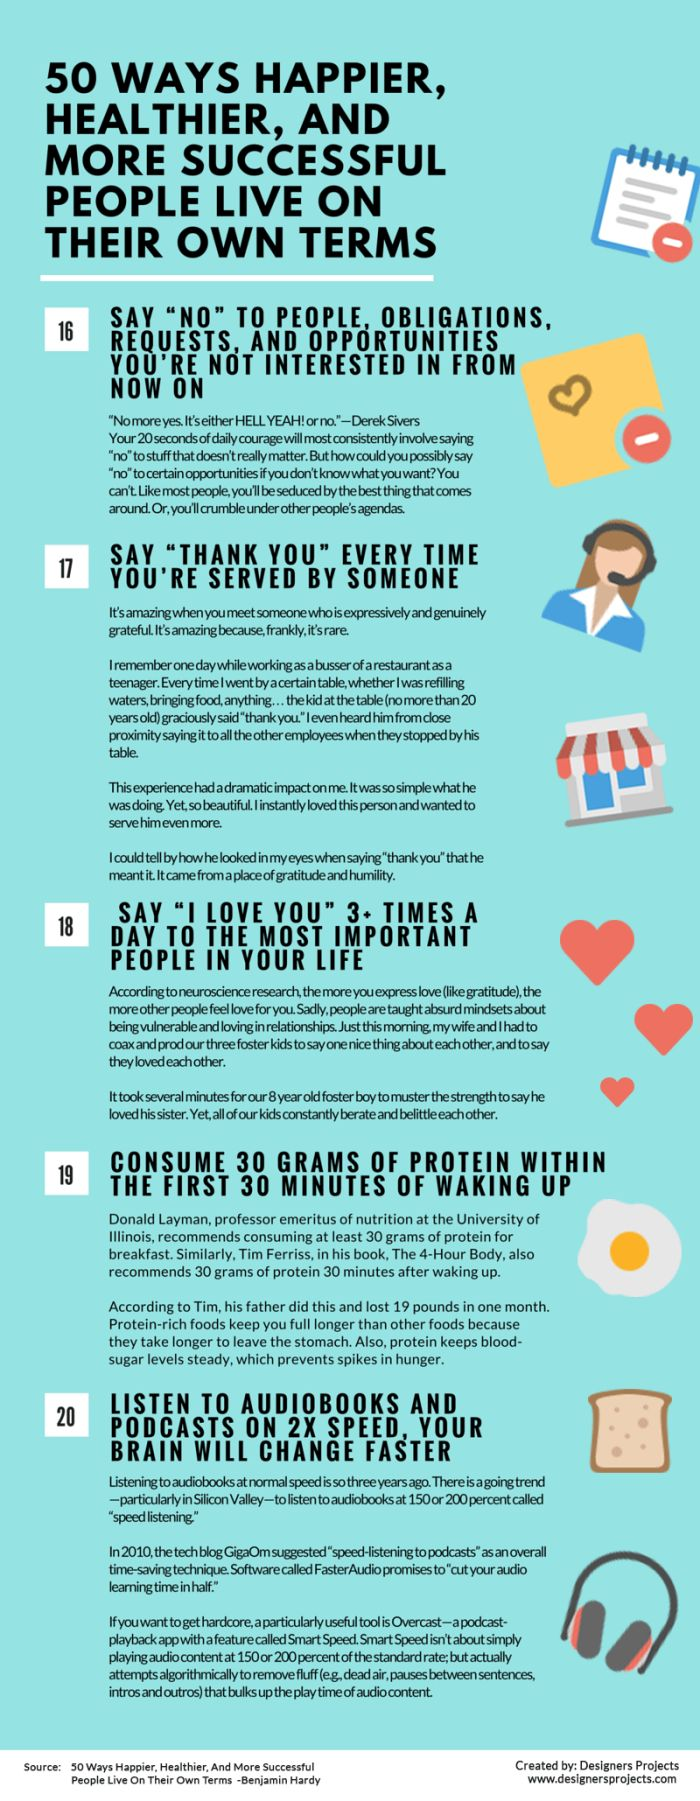 50 Different Ways That Happy And Successful People Live On Their Own Terms